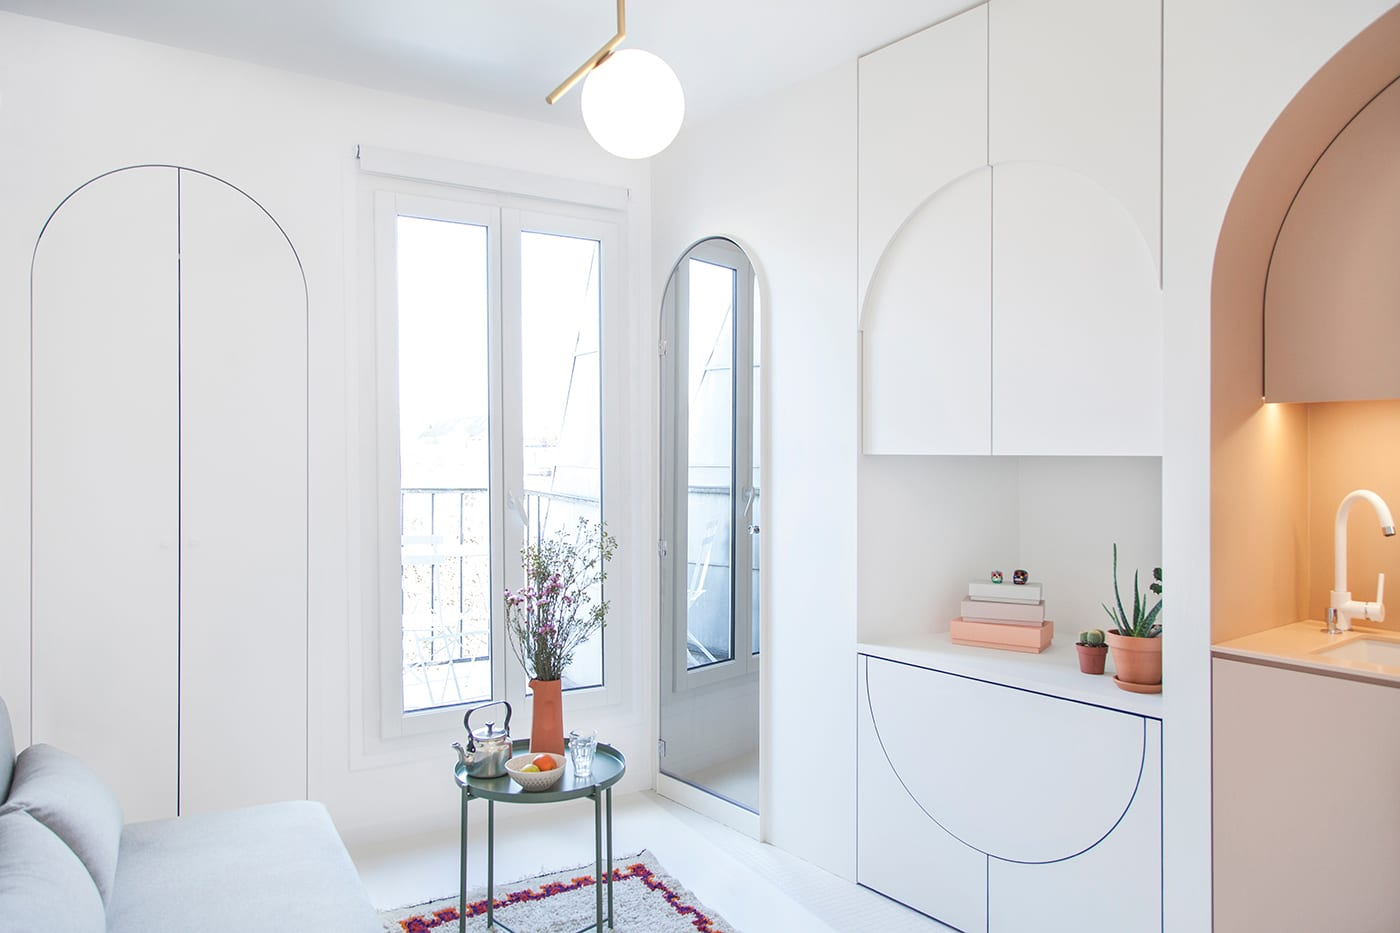 Micro Living Apartment 11m² Micro Apartment In Paris By Batiik Studio Yellowtrace